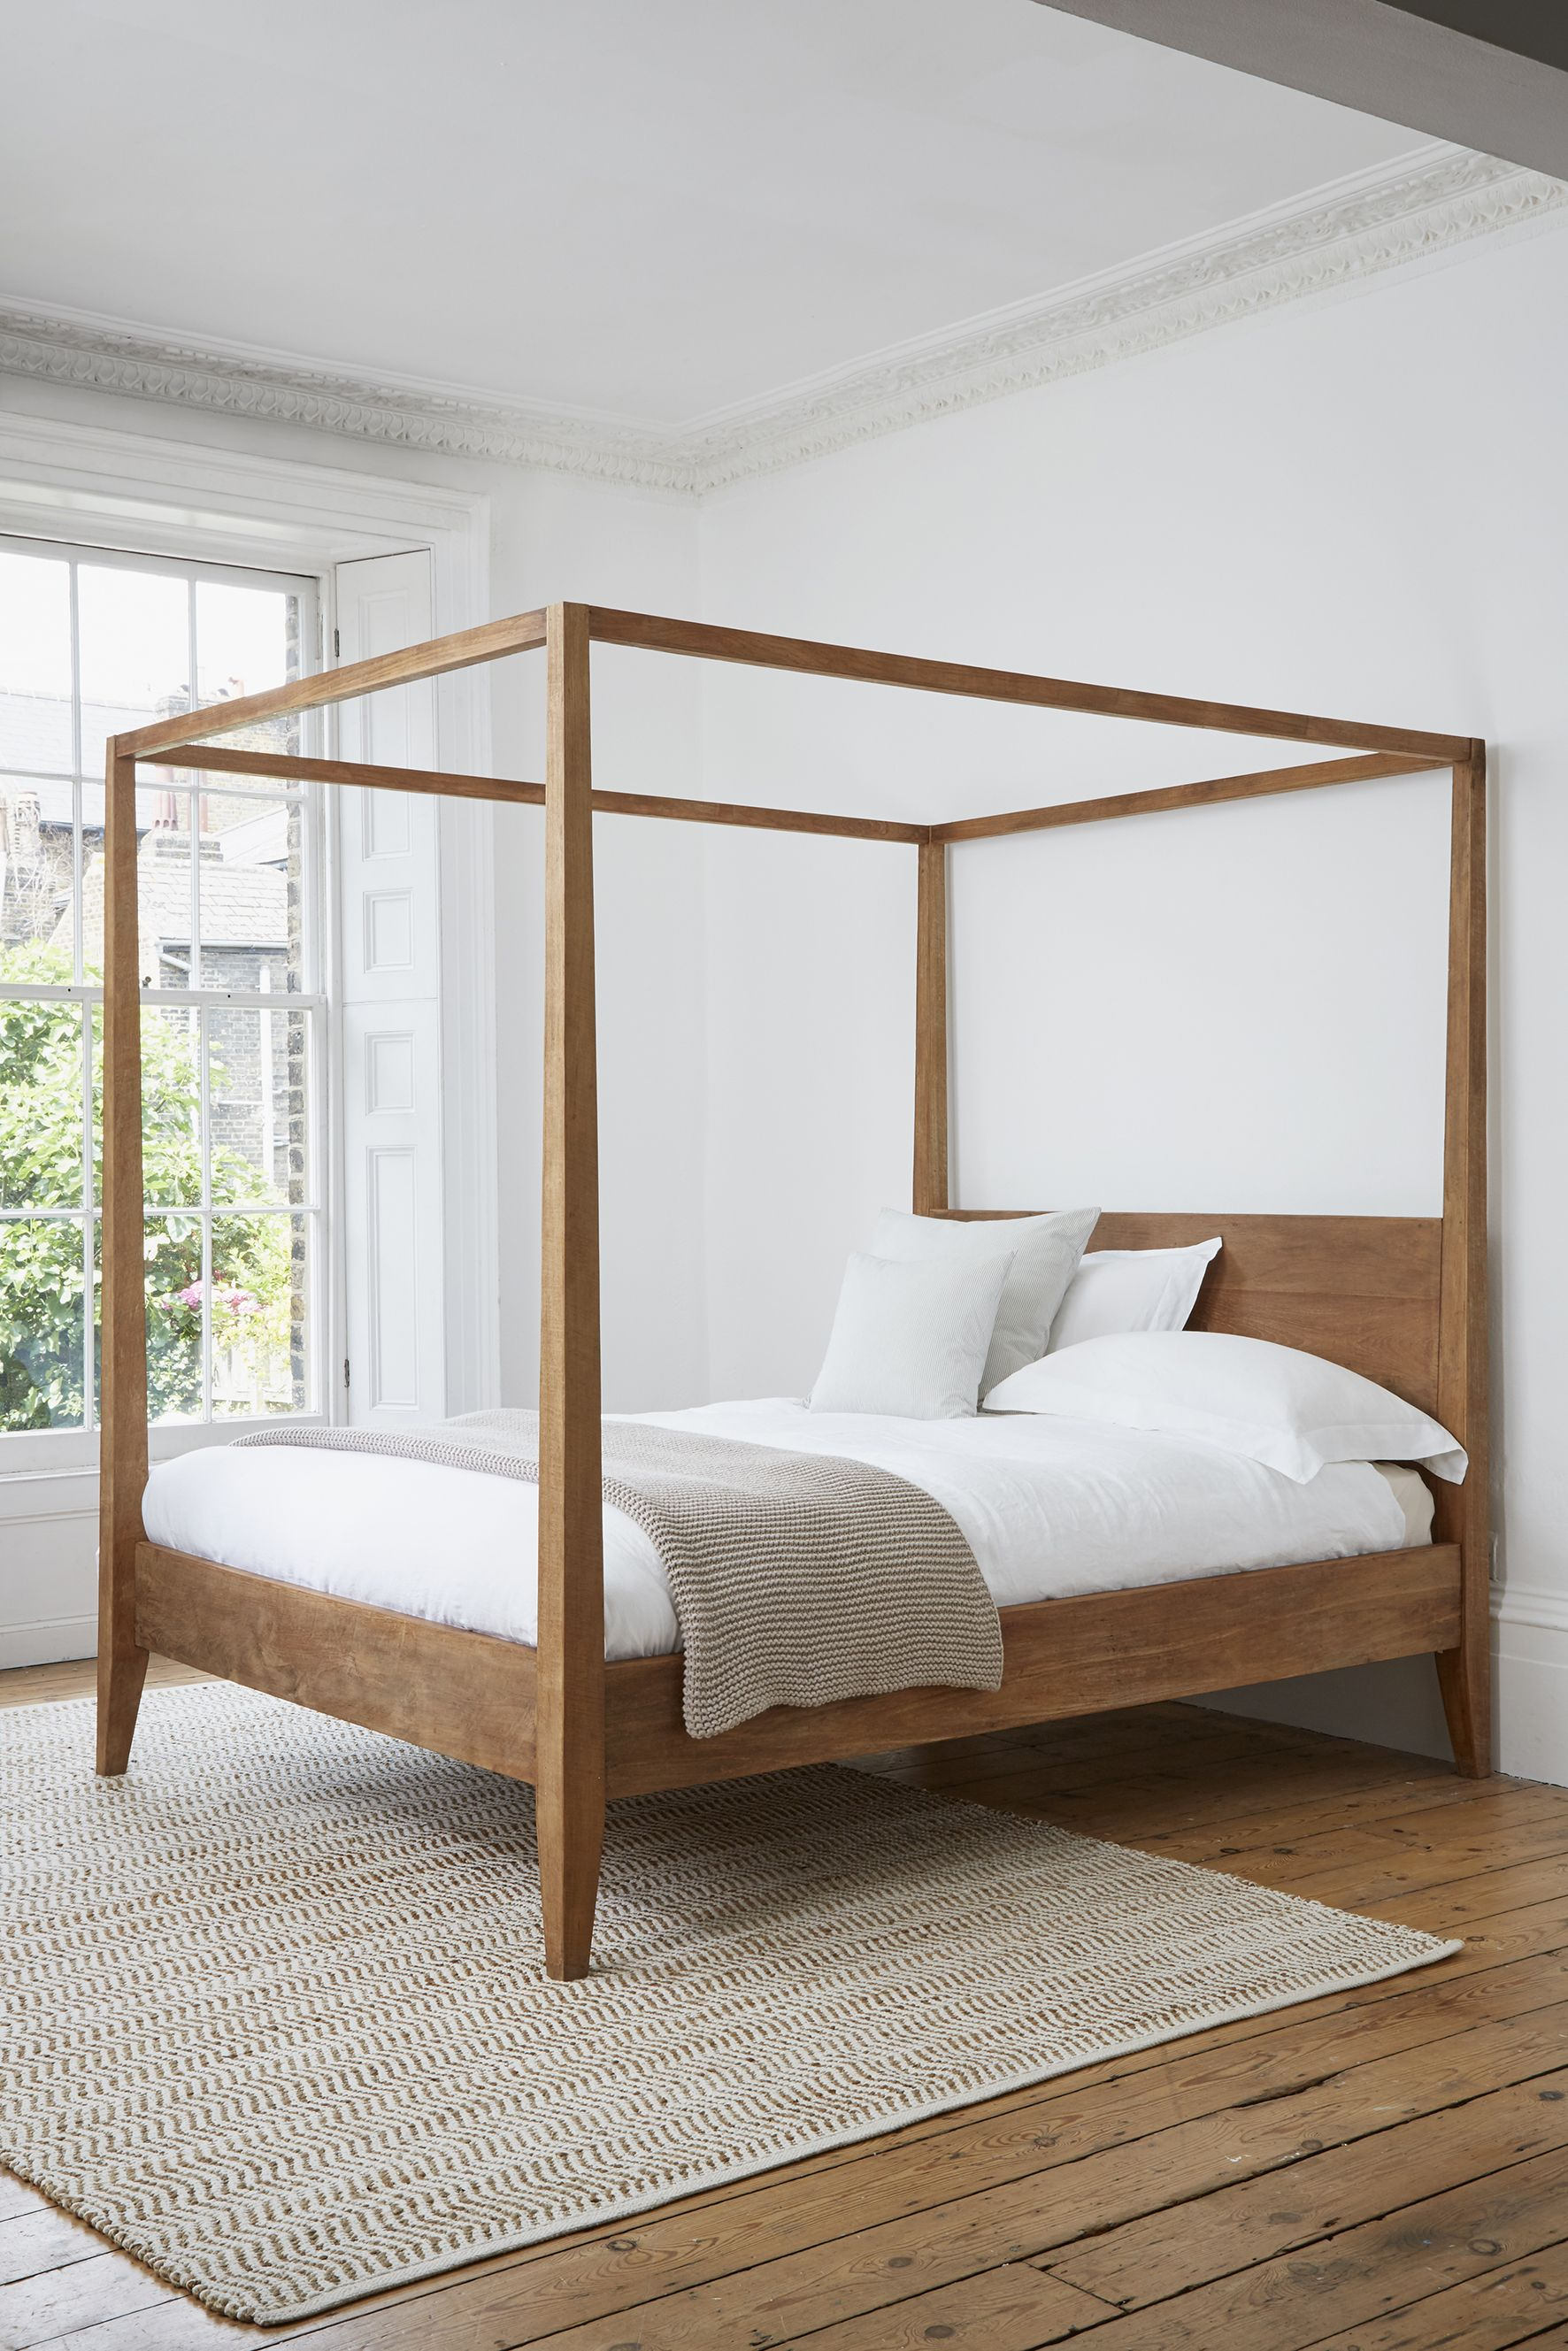 Sumatra Four Poster Bed Canopy Bed Frame Poster Bed Canopy 4 Poster Bed Canopy